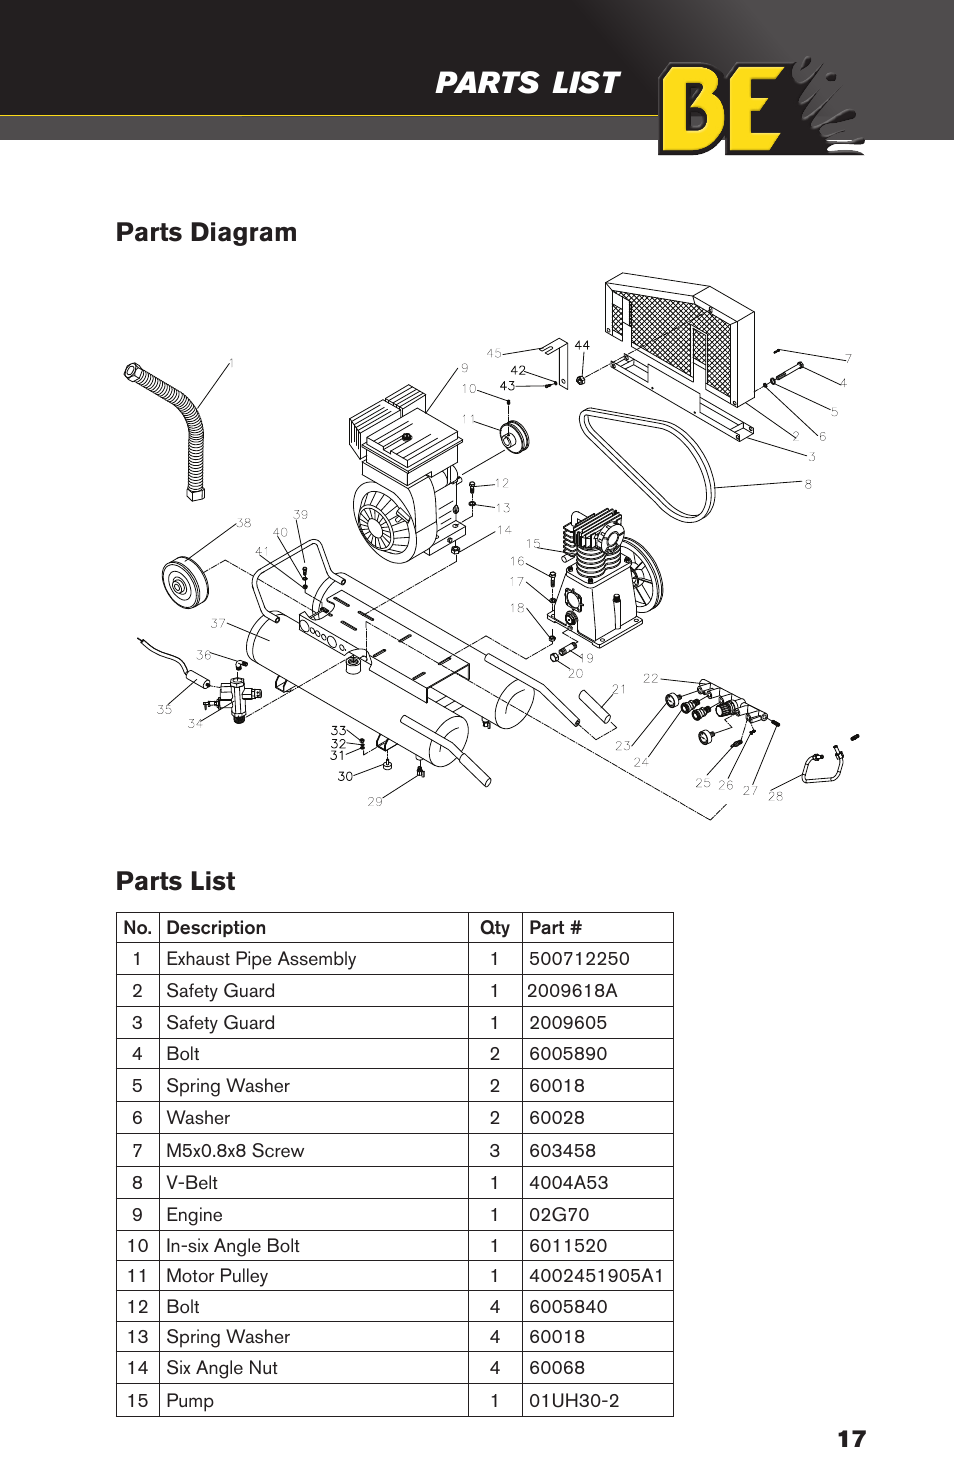 parts  list  parts diagram parts list